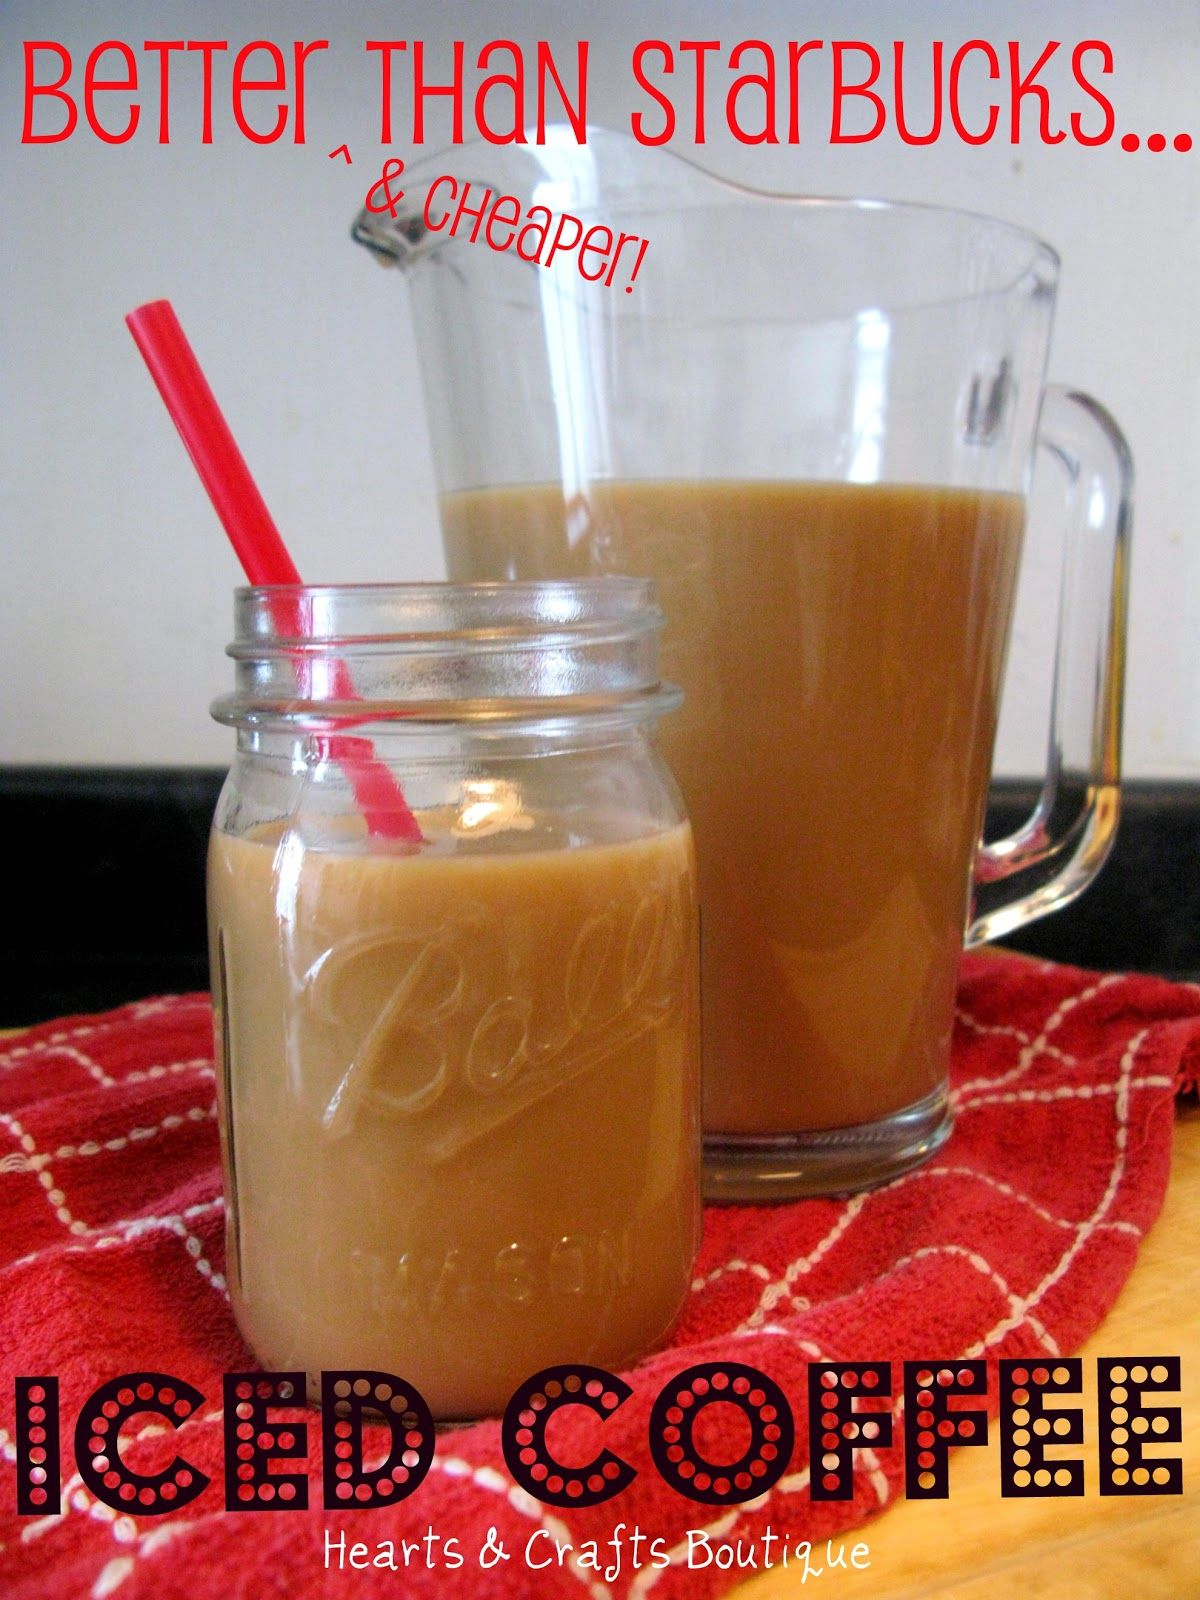 {better than Starbucks} Iced Coffee Recipe...worth a try